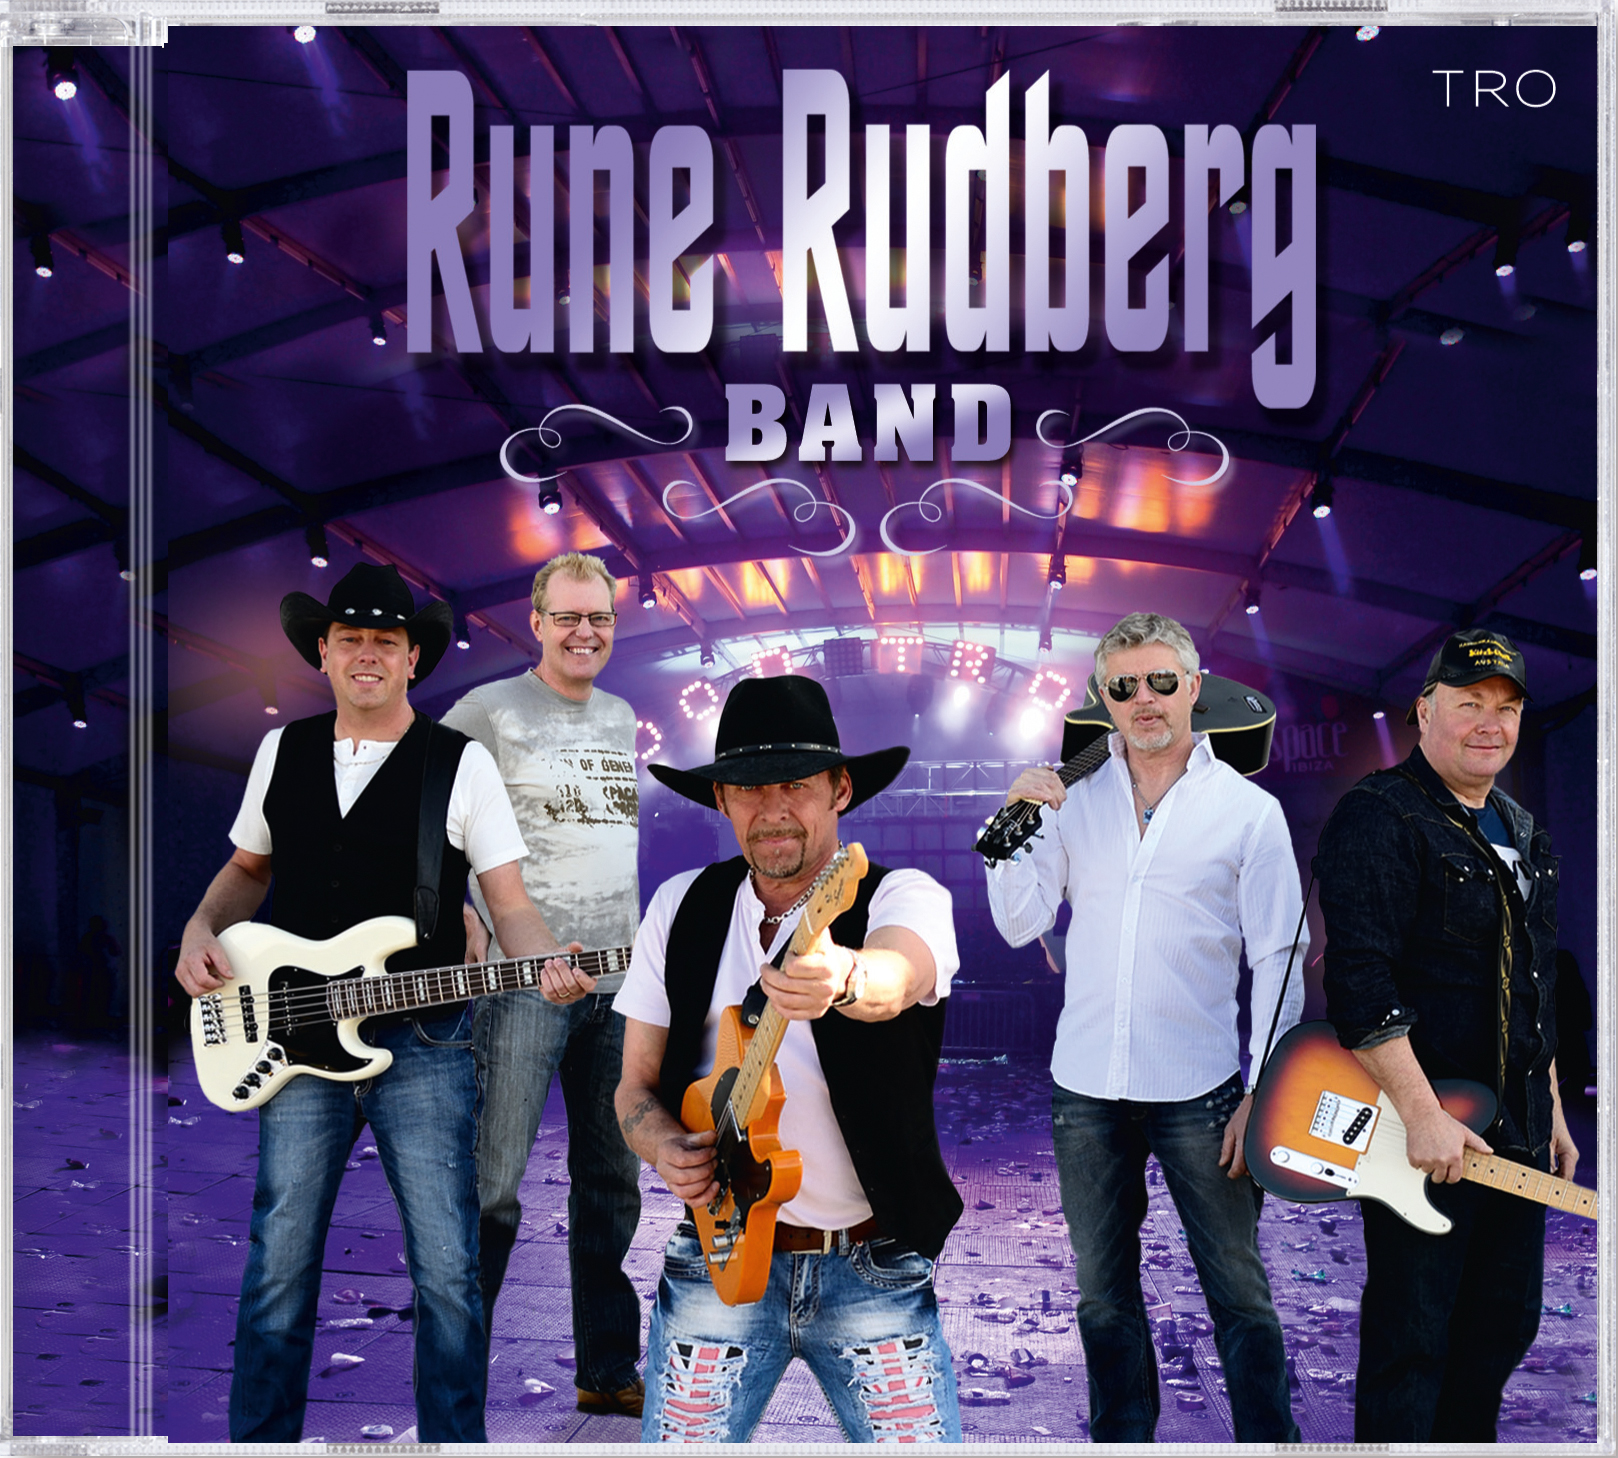 Rune Rudberg Net Worth